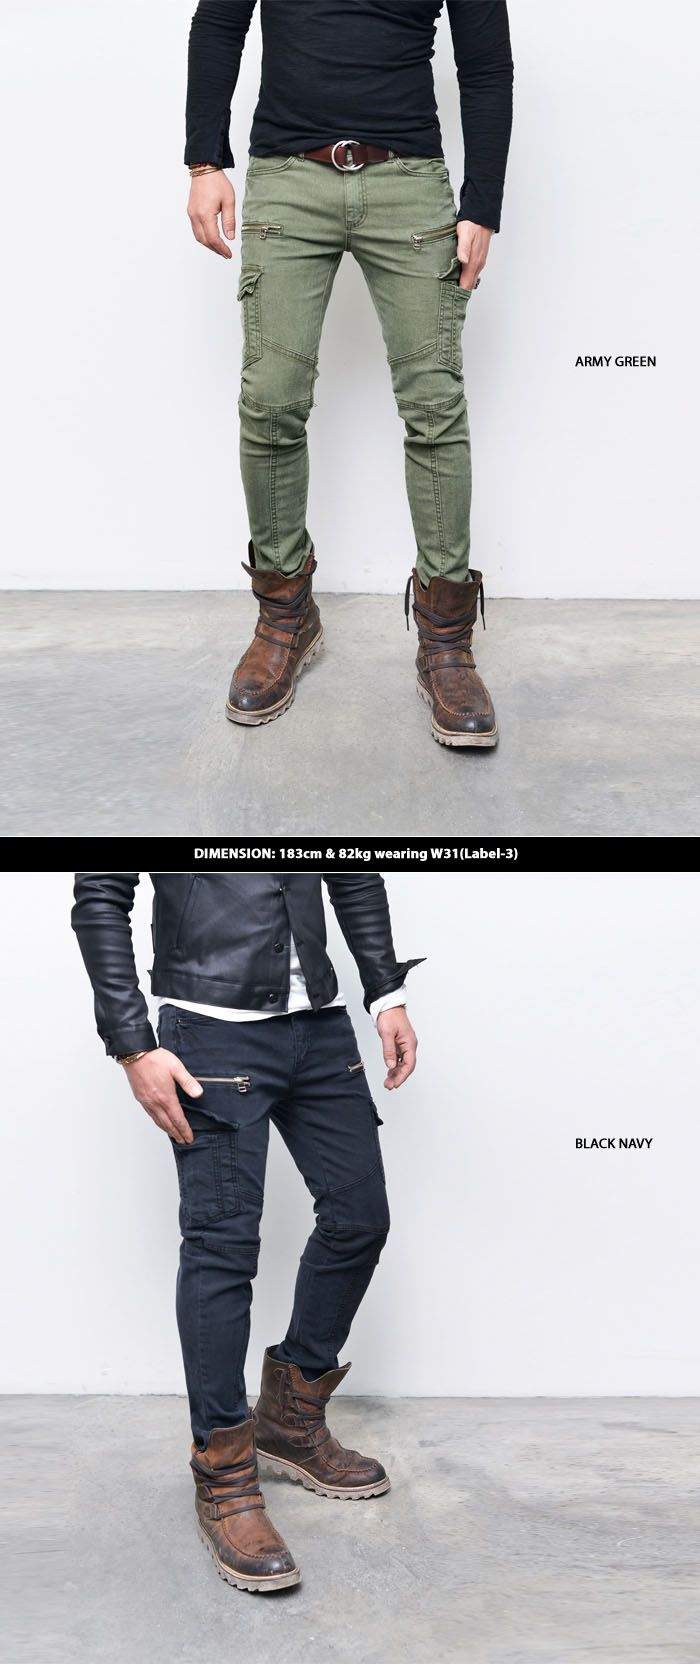 Bottoms :: Pants :: Slim Skinny Cotton Zip Biker Cargo-Pants 165 - Mens Fashion Clothing For An Attractive Guy Look